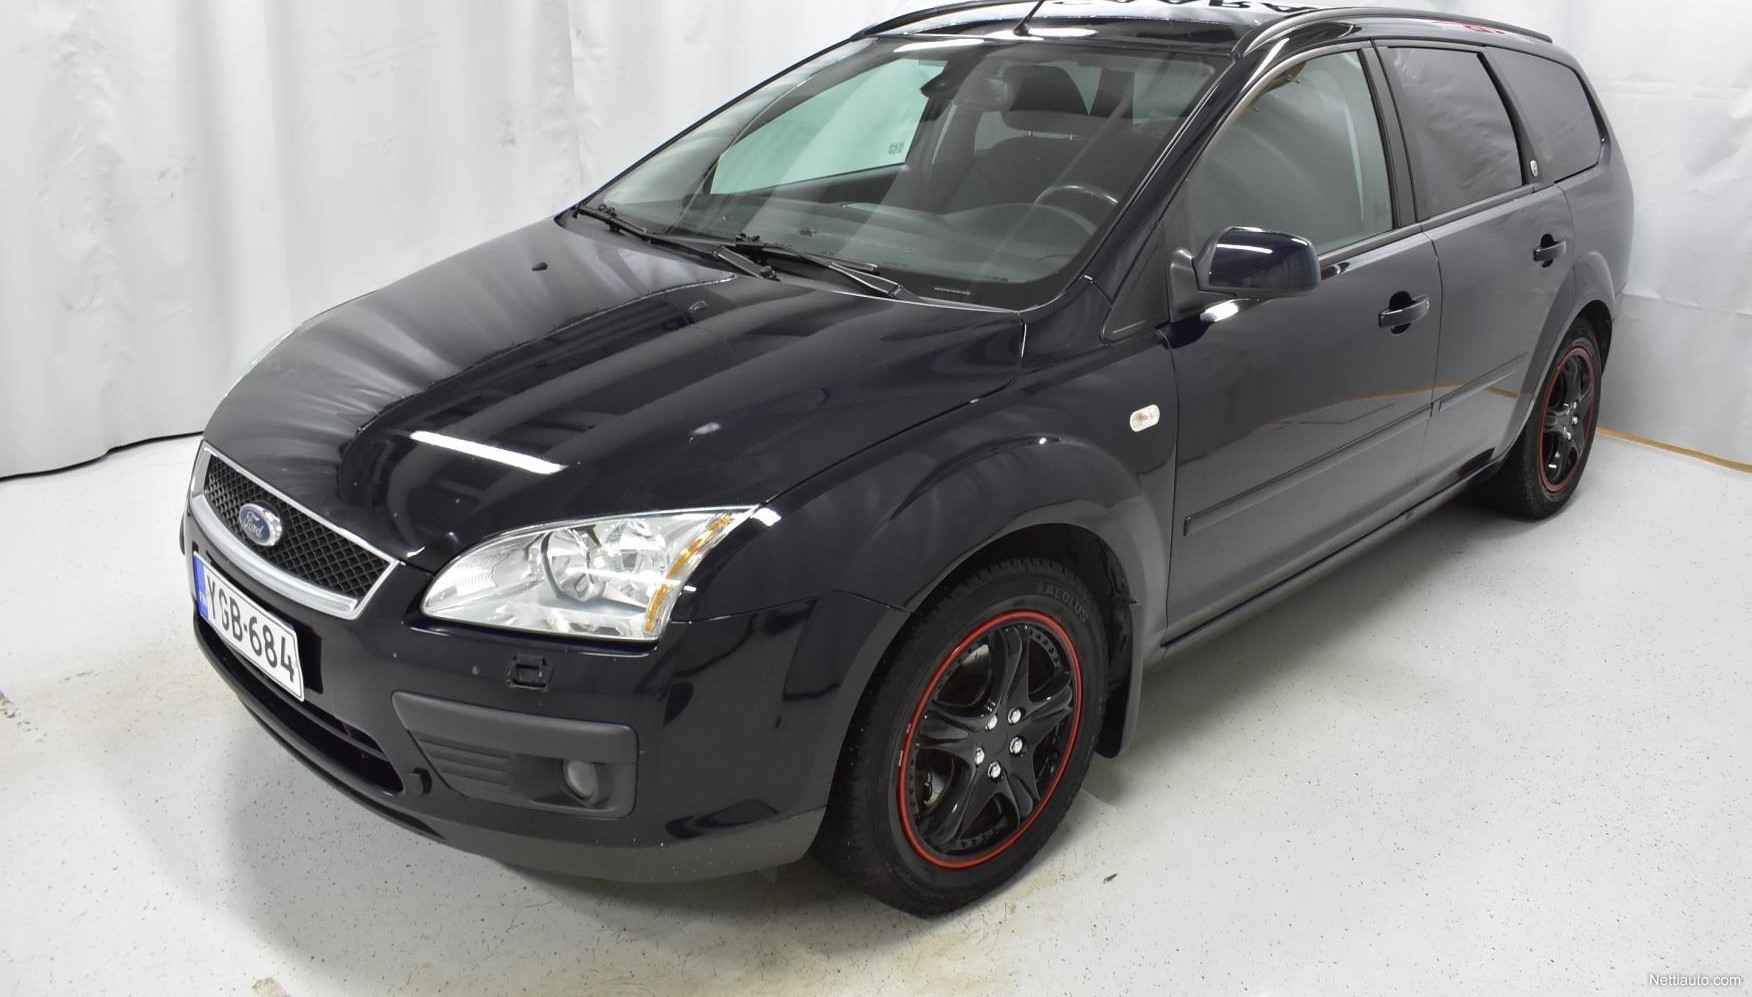 Ford Focus 2 0 Ghia Wagon Farmari 2005 - Vaihtoauto